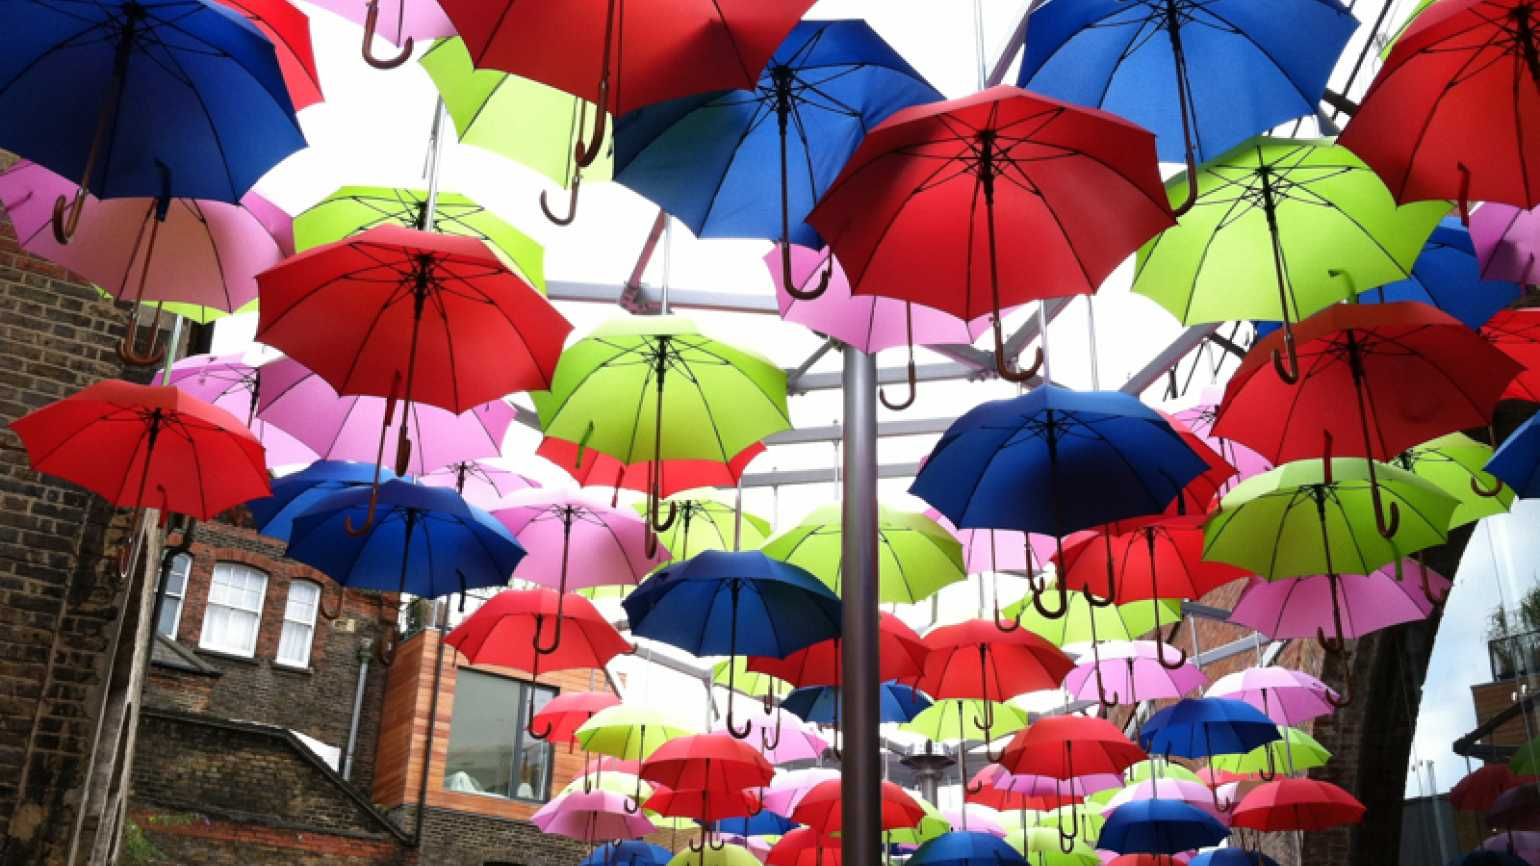 A lunch-break miracle: brightly colored umbrellas suspended in the air in London